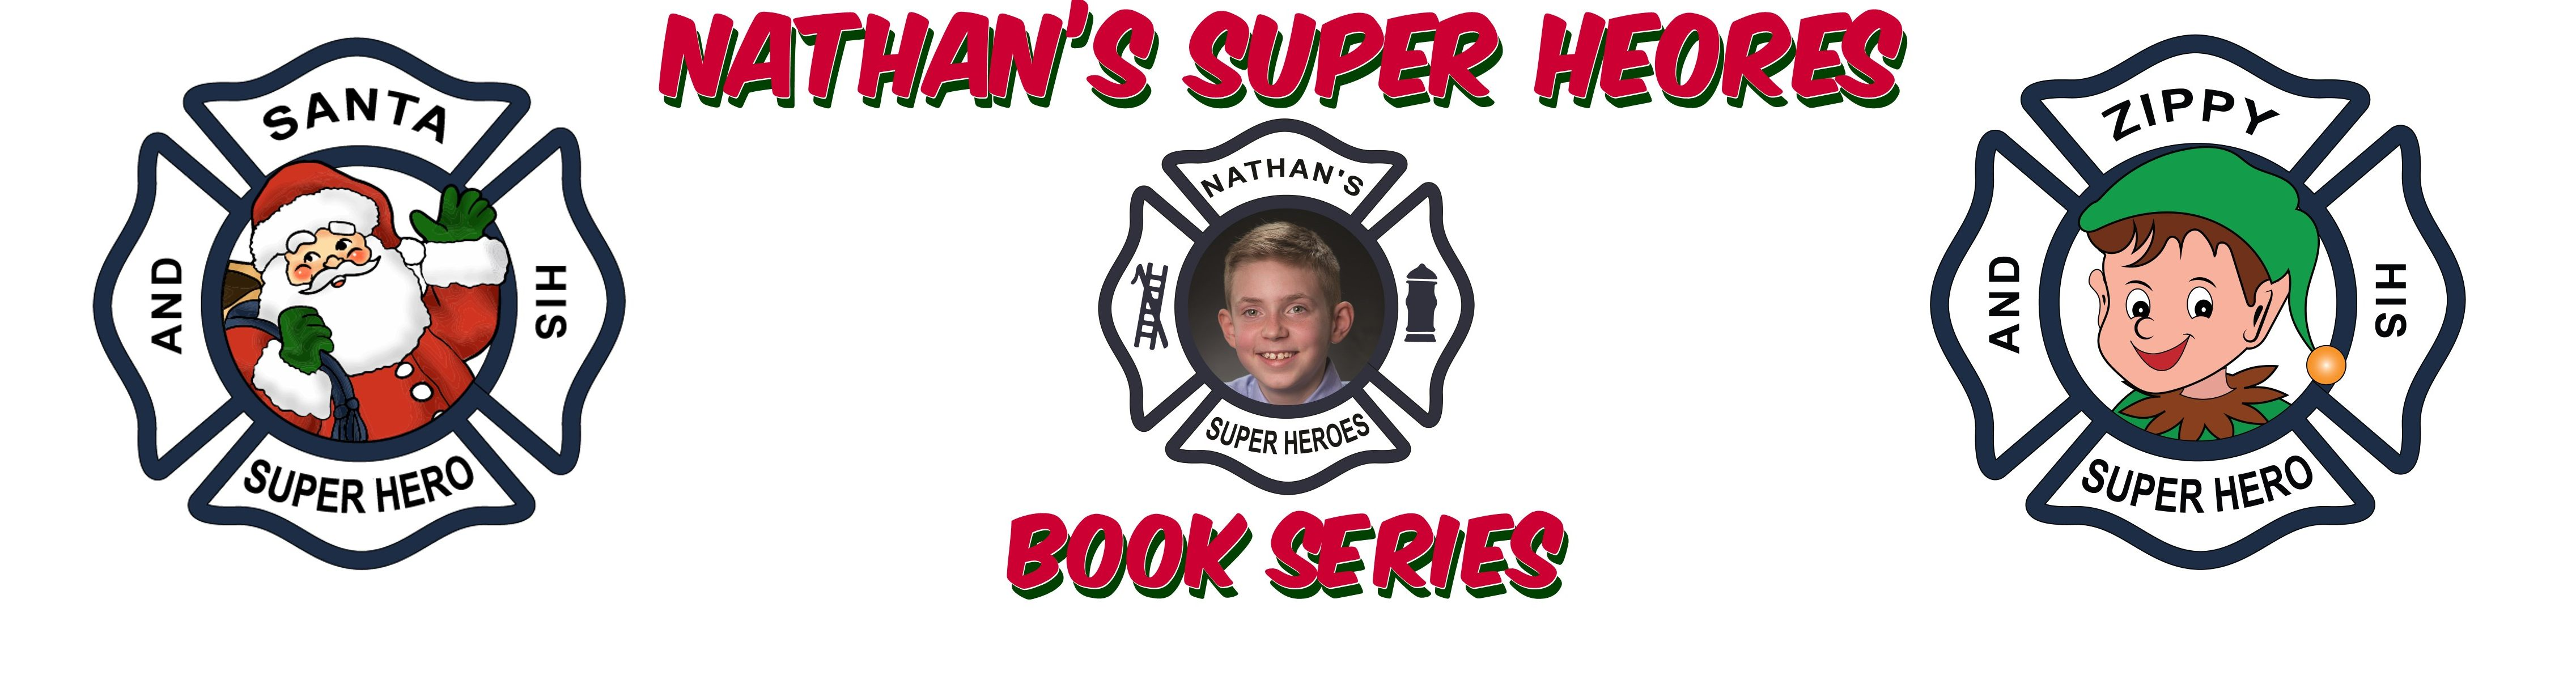 Nathans Super Heroes Book Series